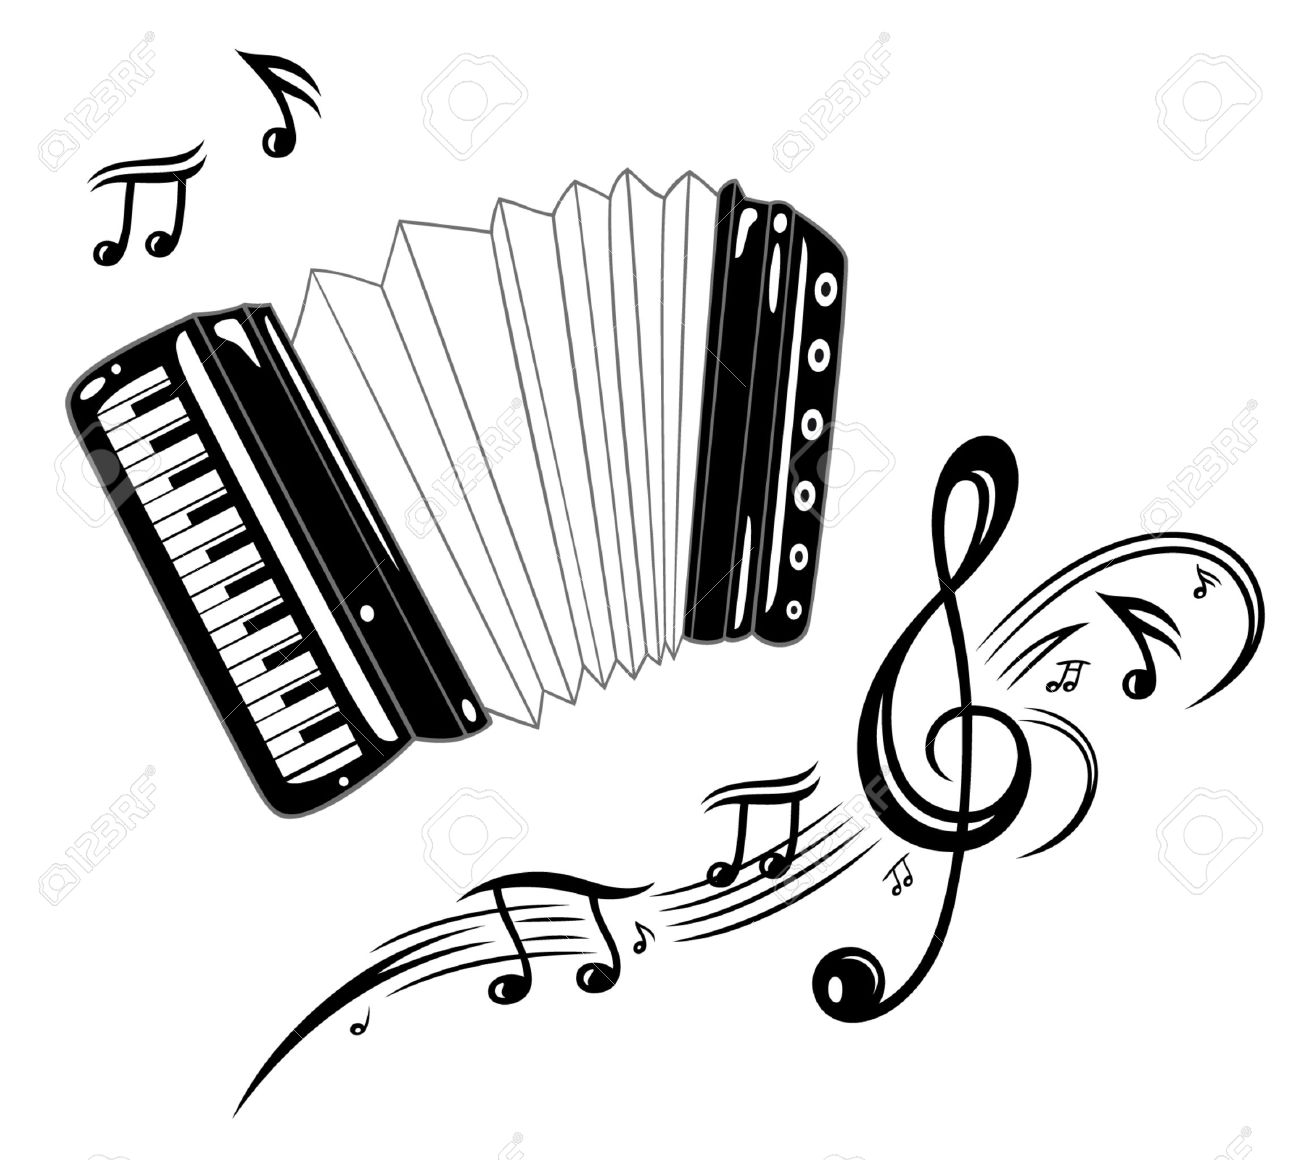 Accordion Drawing At Getdrawings Com Free For Personal